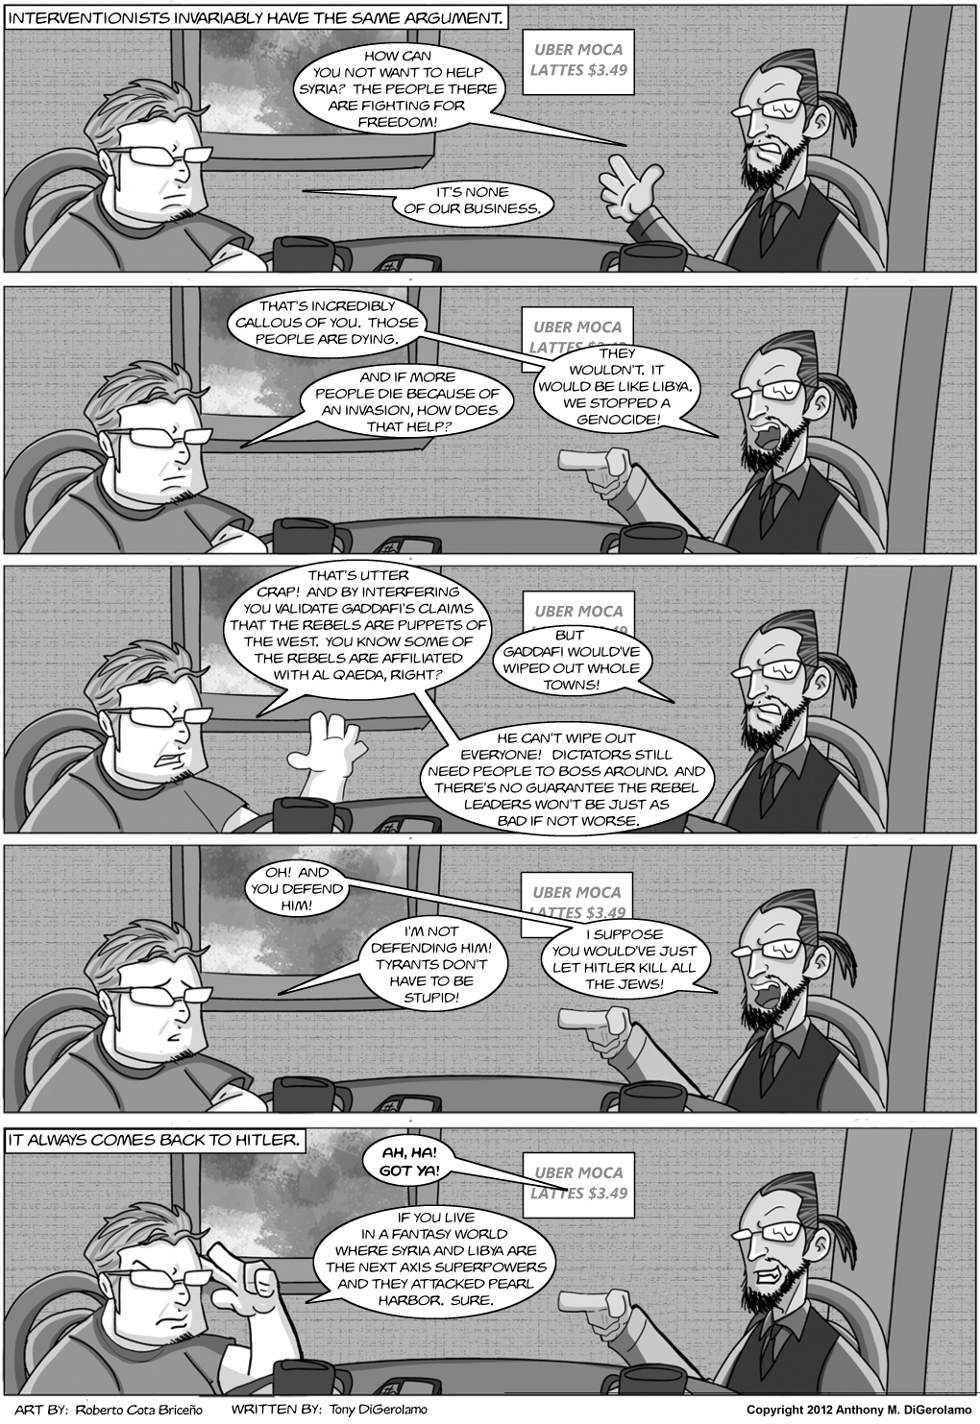 The Antiwar Comic:  The Interventionists&#8217; Argument